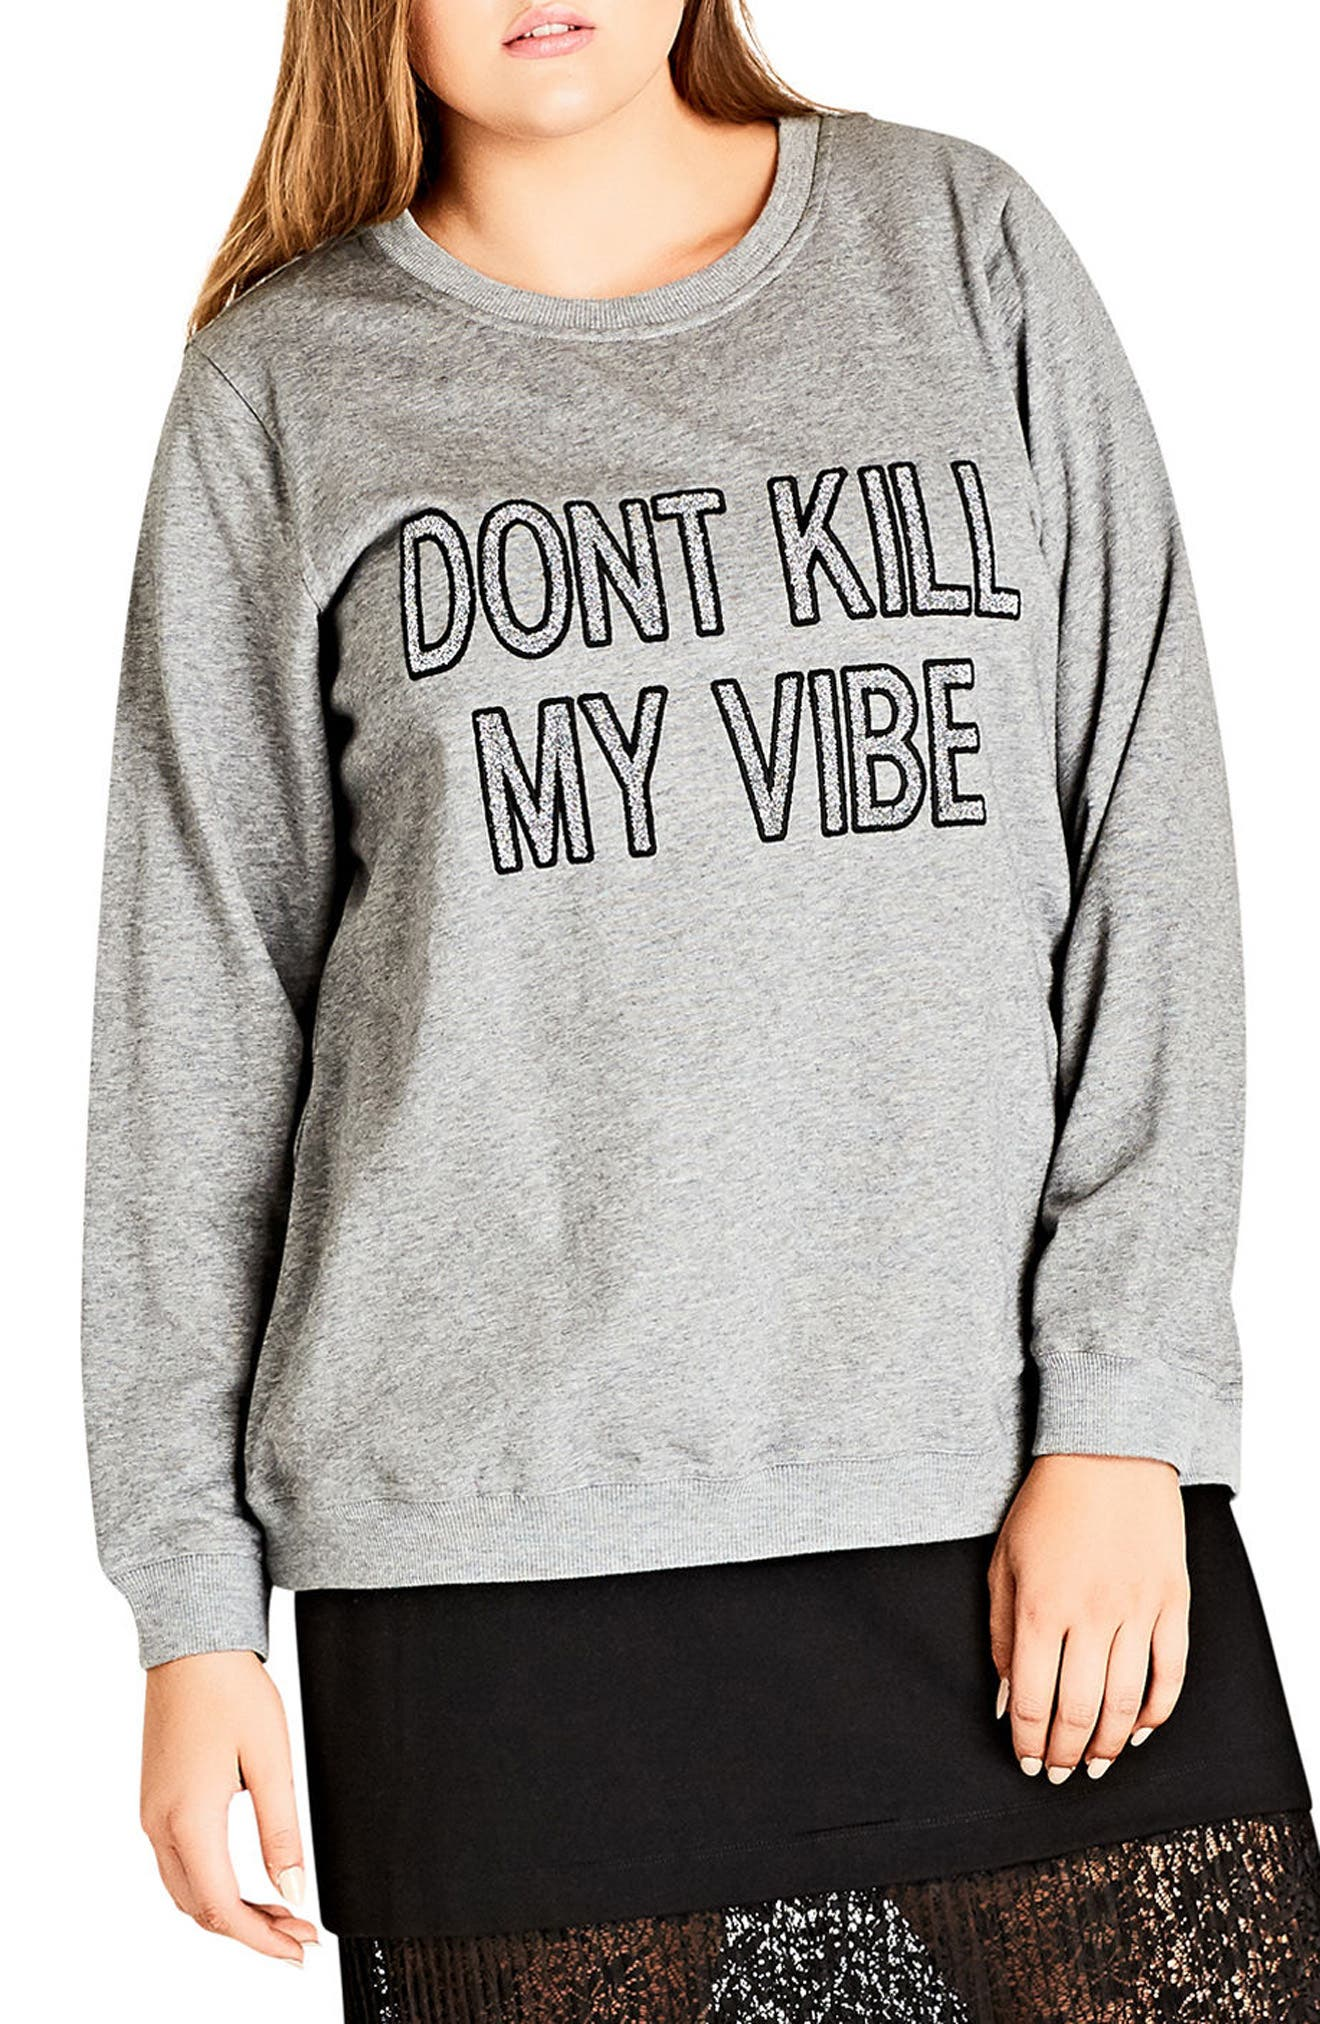 Vibes Glitter Graphic Sweatshirt,                         Main,                         color, 011